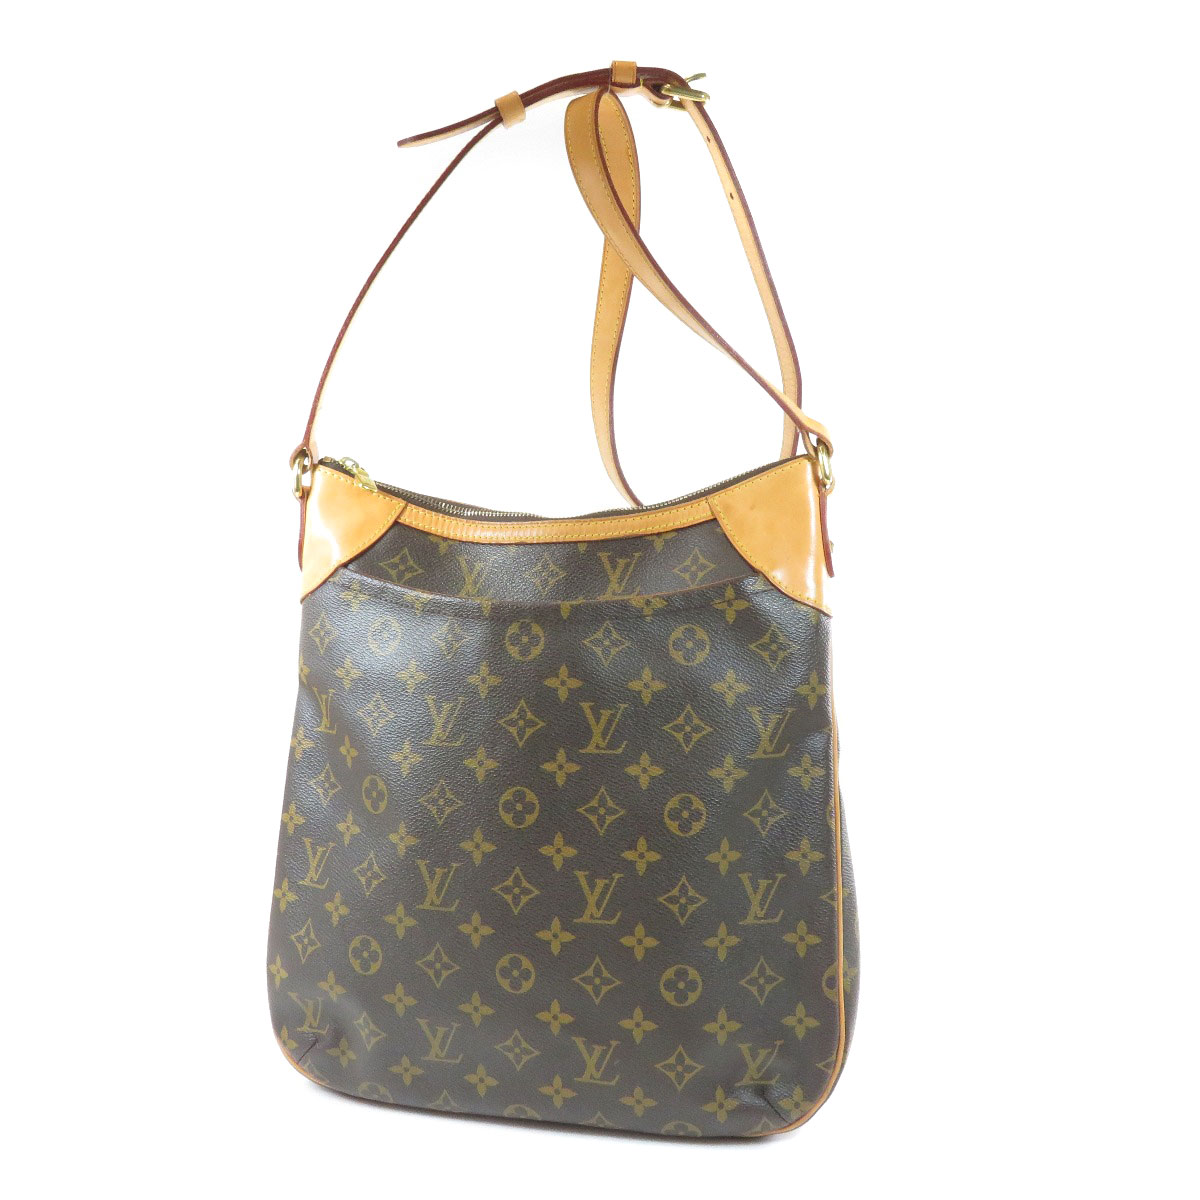 87611f3811a7 Details about LOUIS VUITTON M56389 Shoulder Bag Odeon MM Monogram canvas